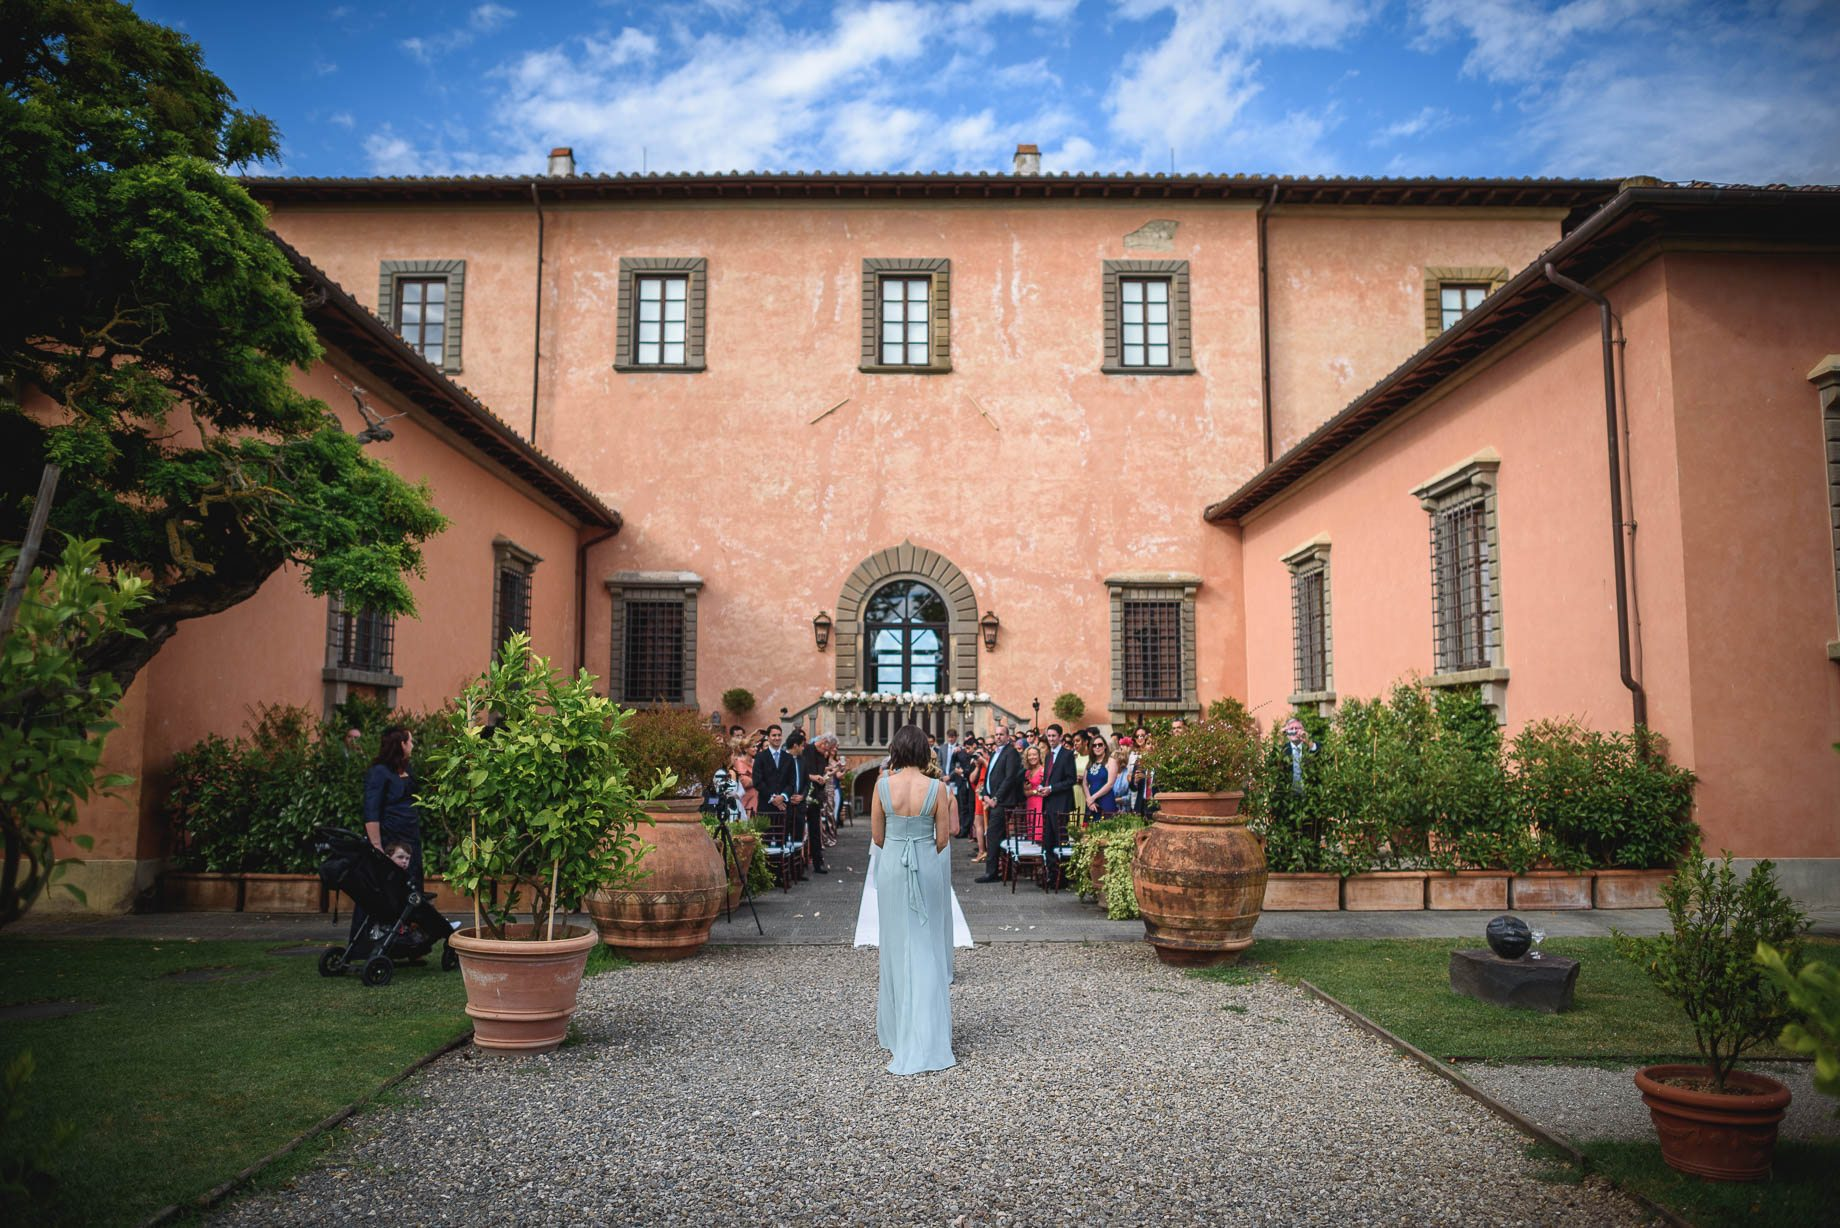 Tuscany wedding photography - Roisin and Moubin - Guy Collier Photography (103 of 251)